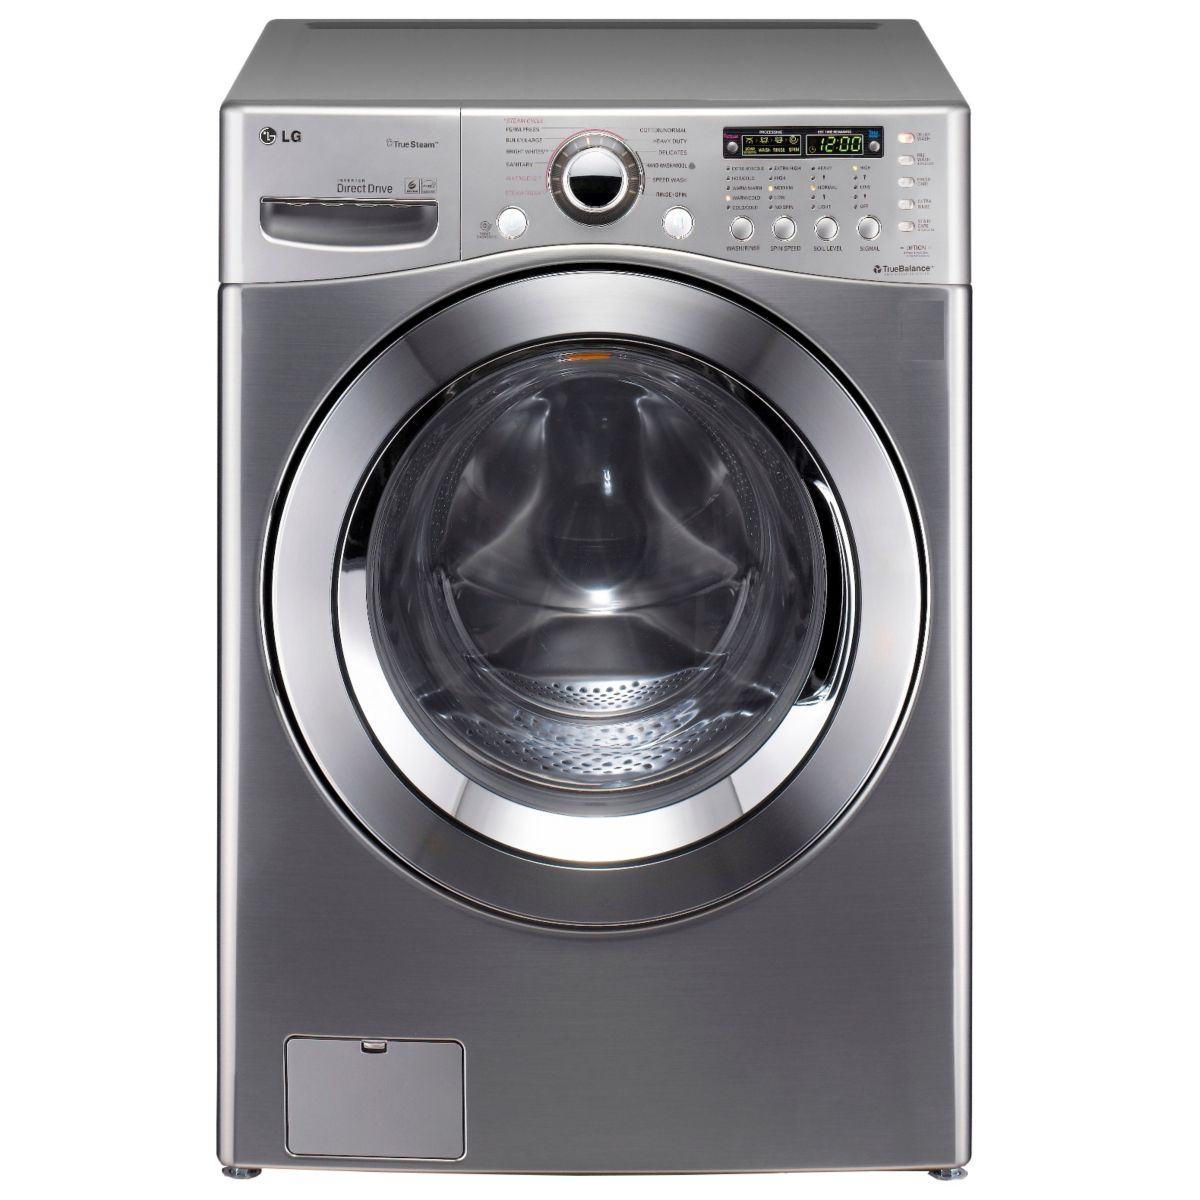 Eco Bubble Samsung Lg F52596ixs - Lave Linge Frontal 6 Motion Direct Drive 15